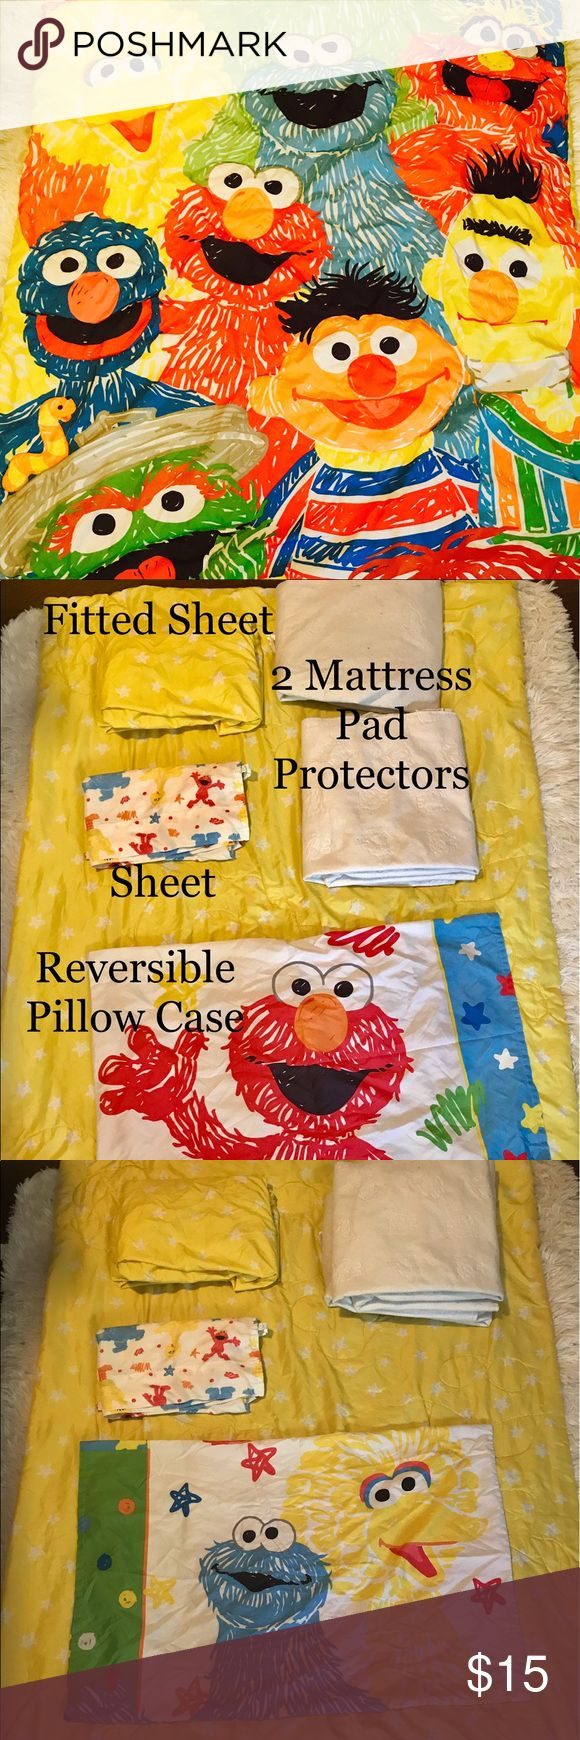 """Elmo Toddler Bed Comforter/Mattress Pad/and Sheets Reversible toddler bed """"Sesame Street Friends"""" reversible comforter, reversible pillowcase, fitted Sheet, flat sheet and 2 mattress pad protectors. All have been thoroughly cleaned, and ready for happy nights in your home! Other"""